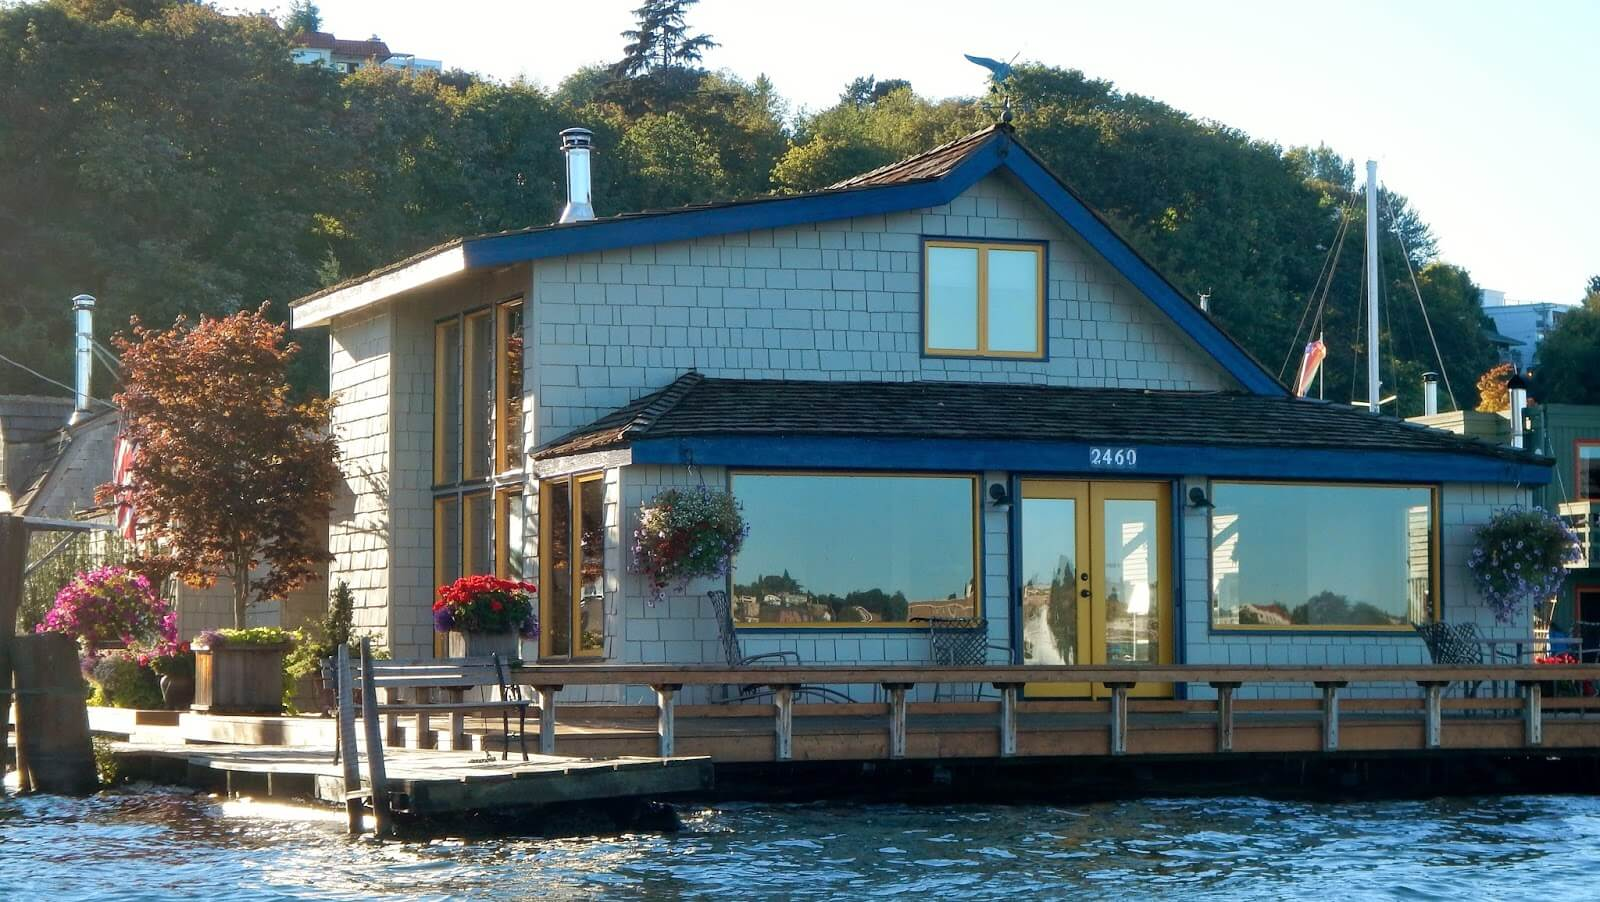 #10 Sleeptless In Seatle Floating Home | Homes Featured In Movies | Image Source:  unlimitednetworth.com